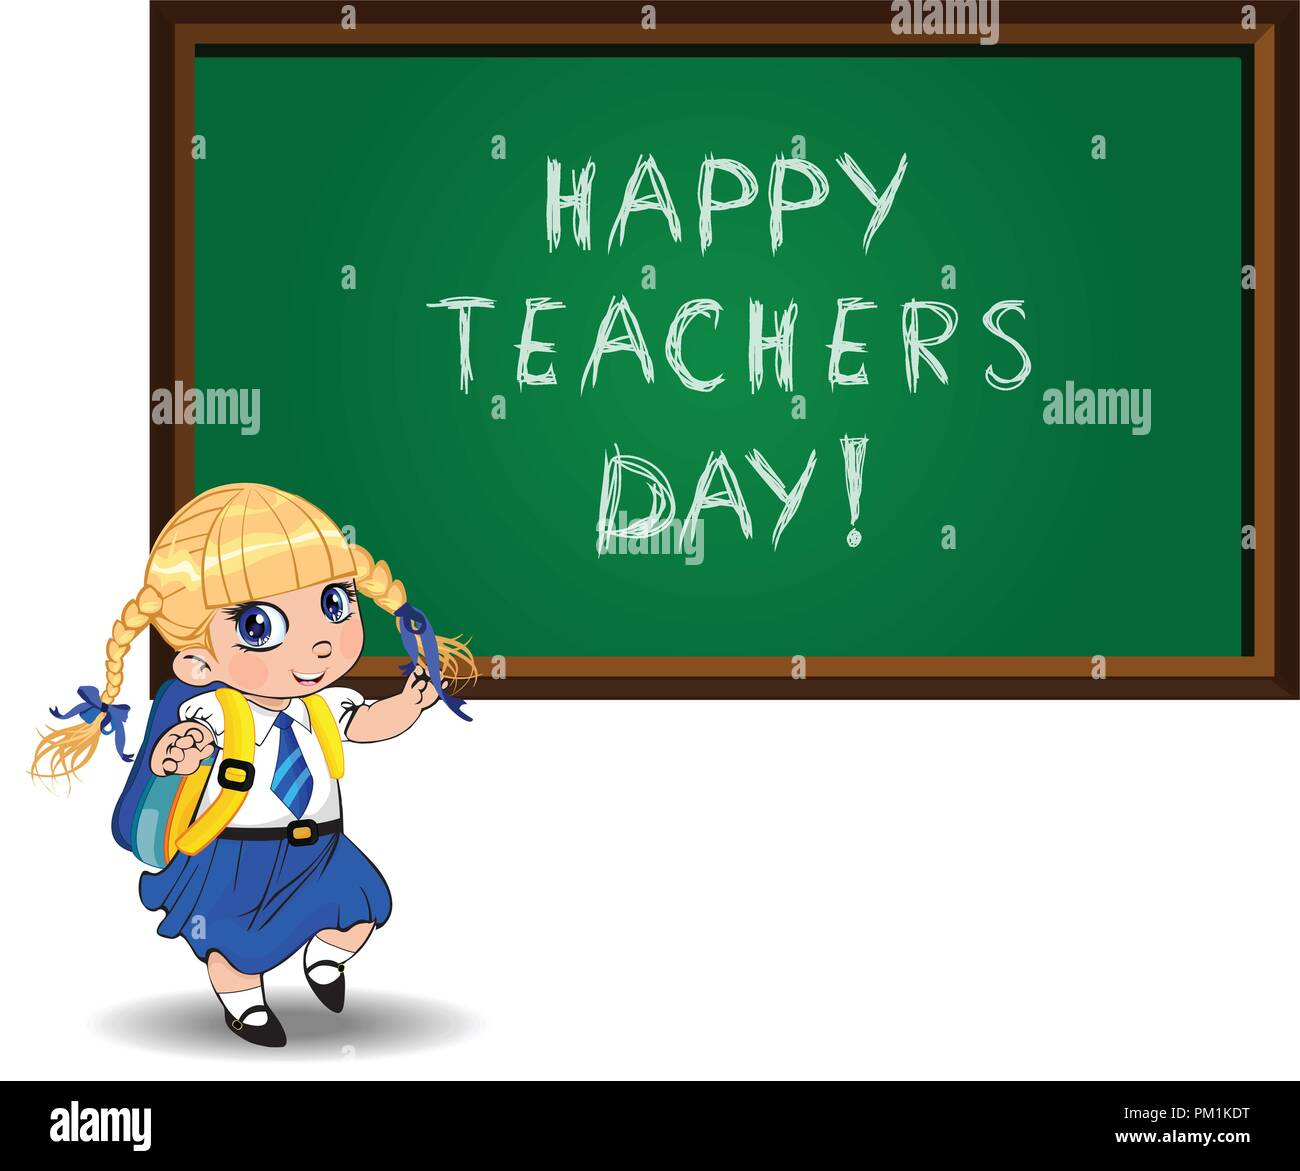 Happy teachers day greeting card clip art with cute cartoon school girl  wearing uniform and backpack near chalckboard on white. Vector illustration  of 36d6e05ab9310